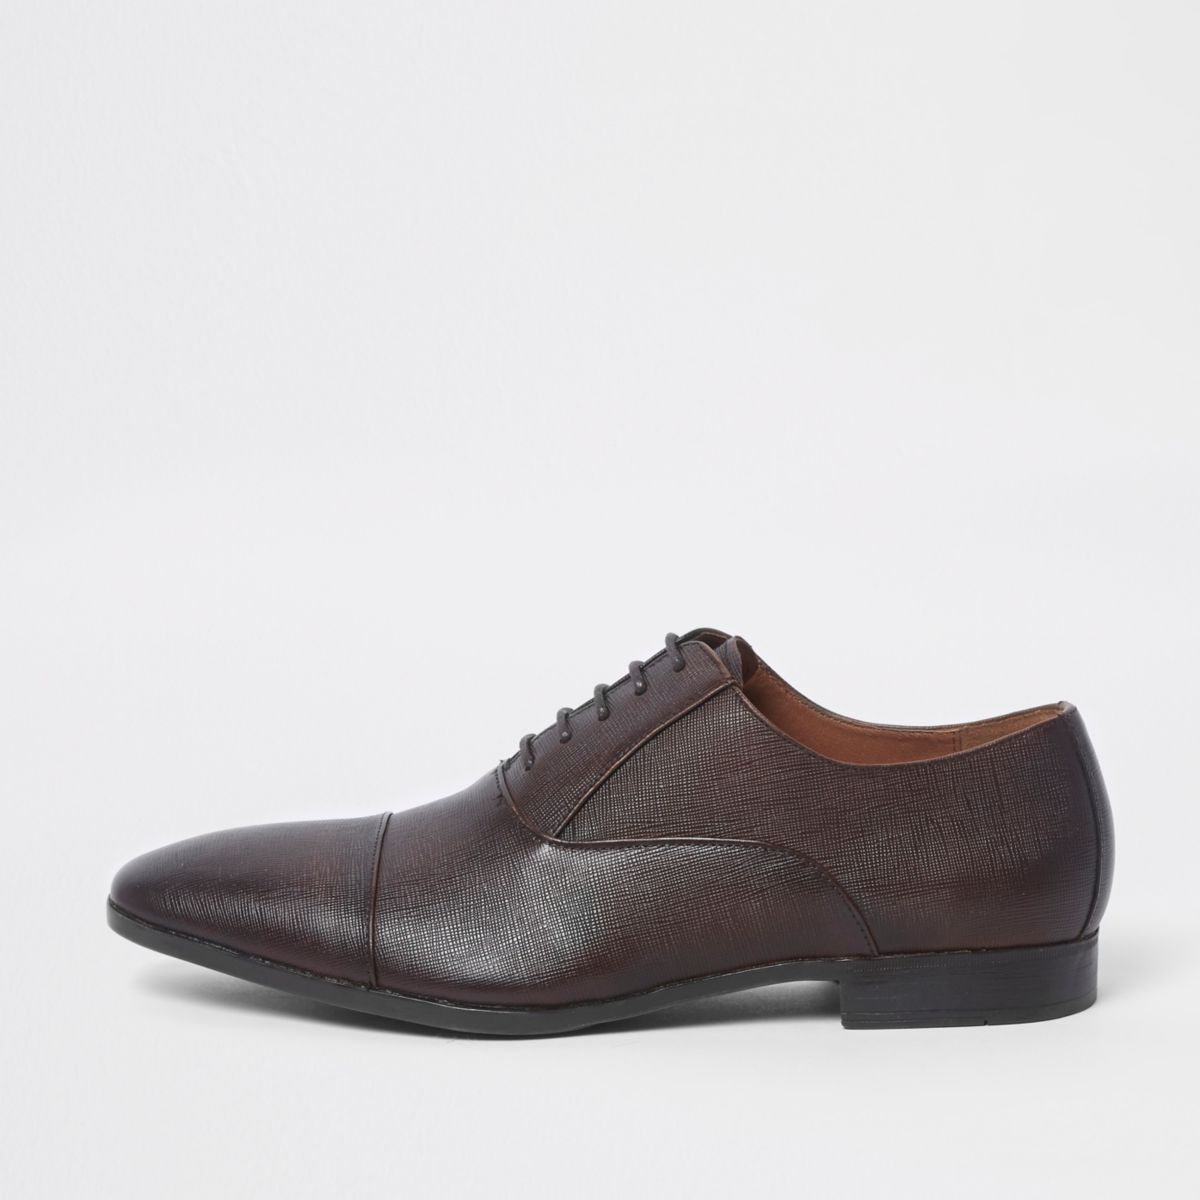 Brown embossed toecap Oxford shoes